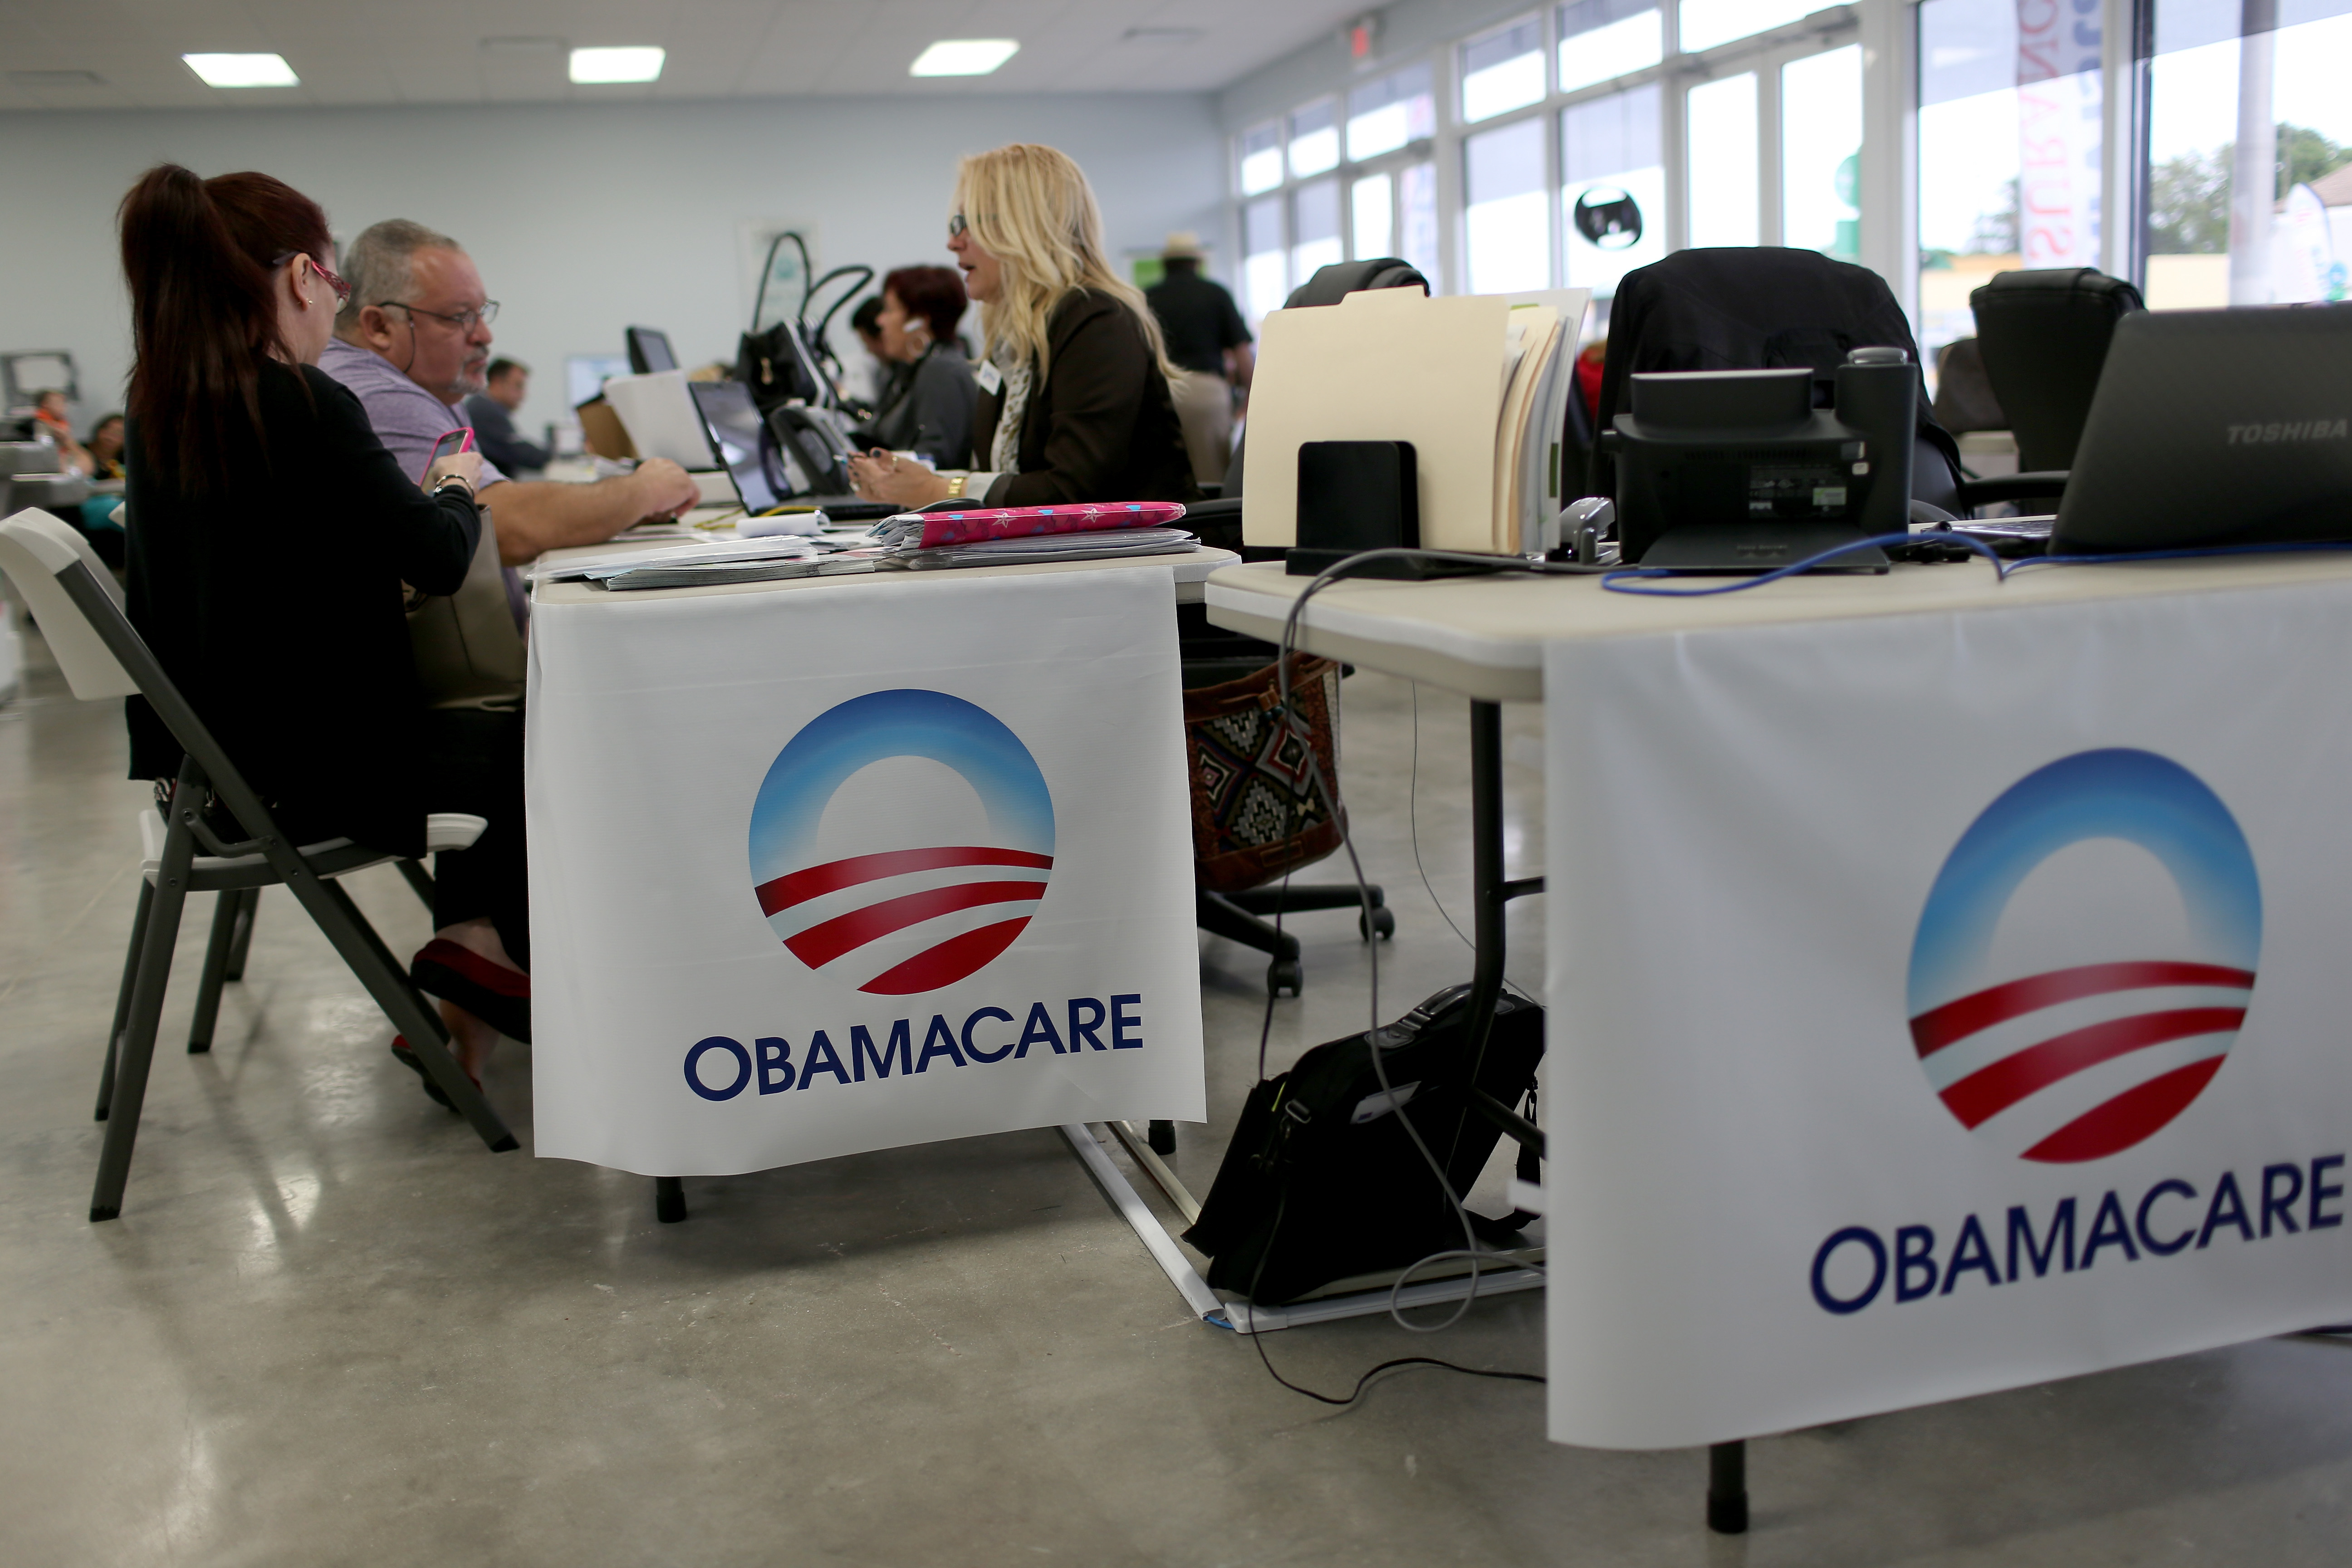 Aymara Marchante (L) and Wiktor Garcia sit with Maria Elena Santa Coloma, an insurance advisor with UniVista Insurance company, as they sign up for the Affordable Care Act, also known as Obamacare, before the February 15th deadline on February 5, 2015 in Miami, Florida.